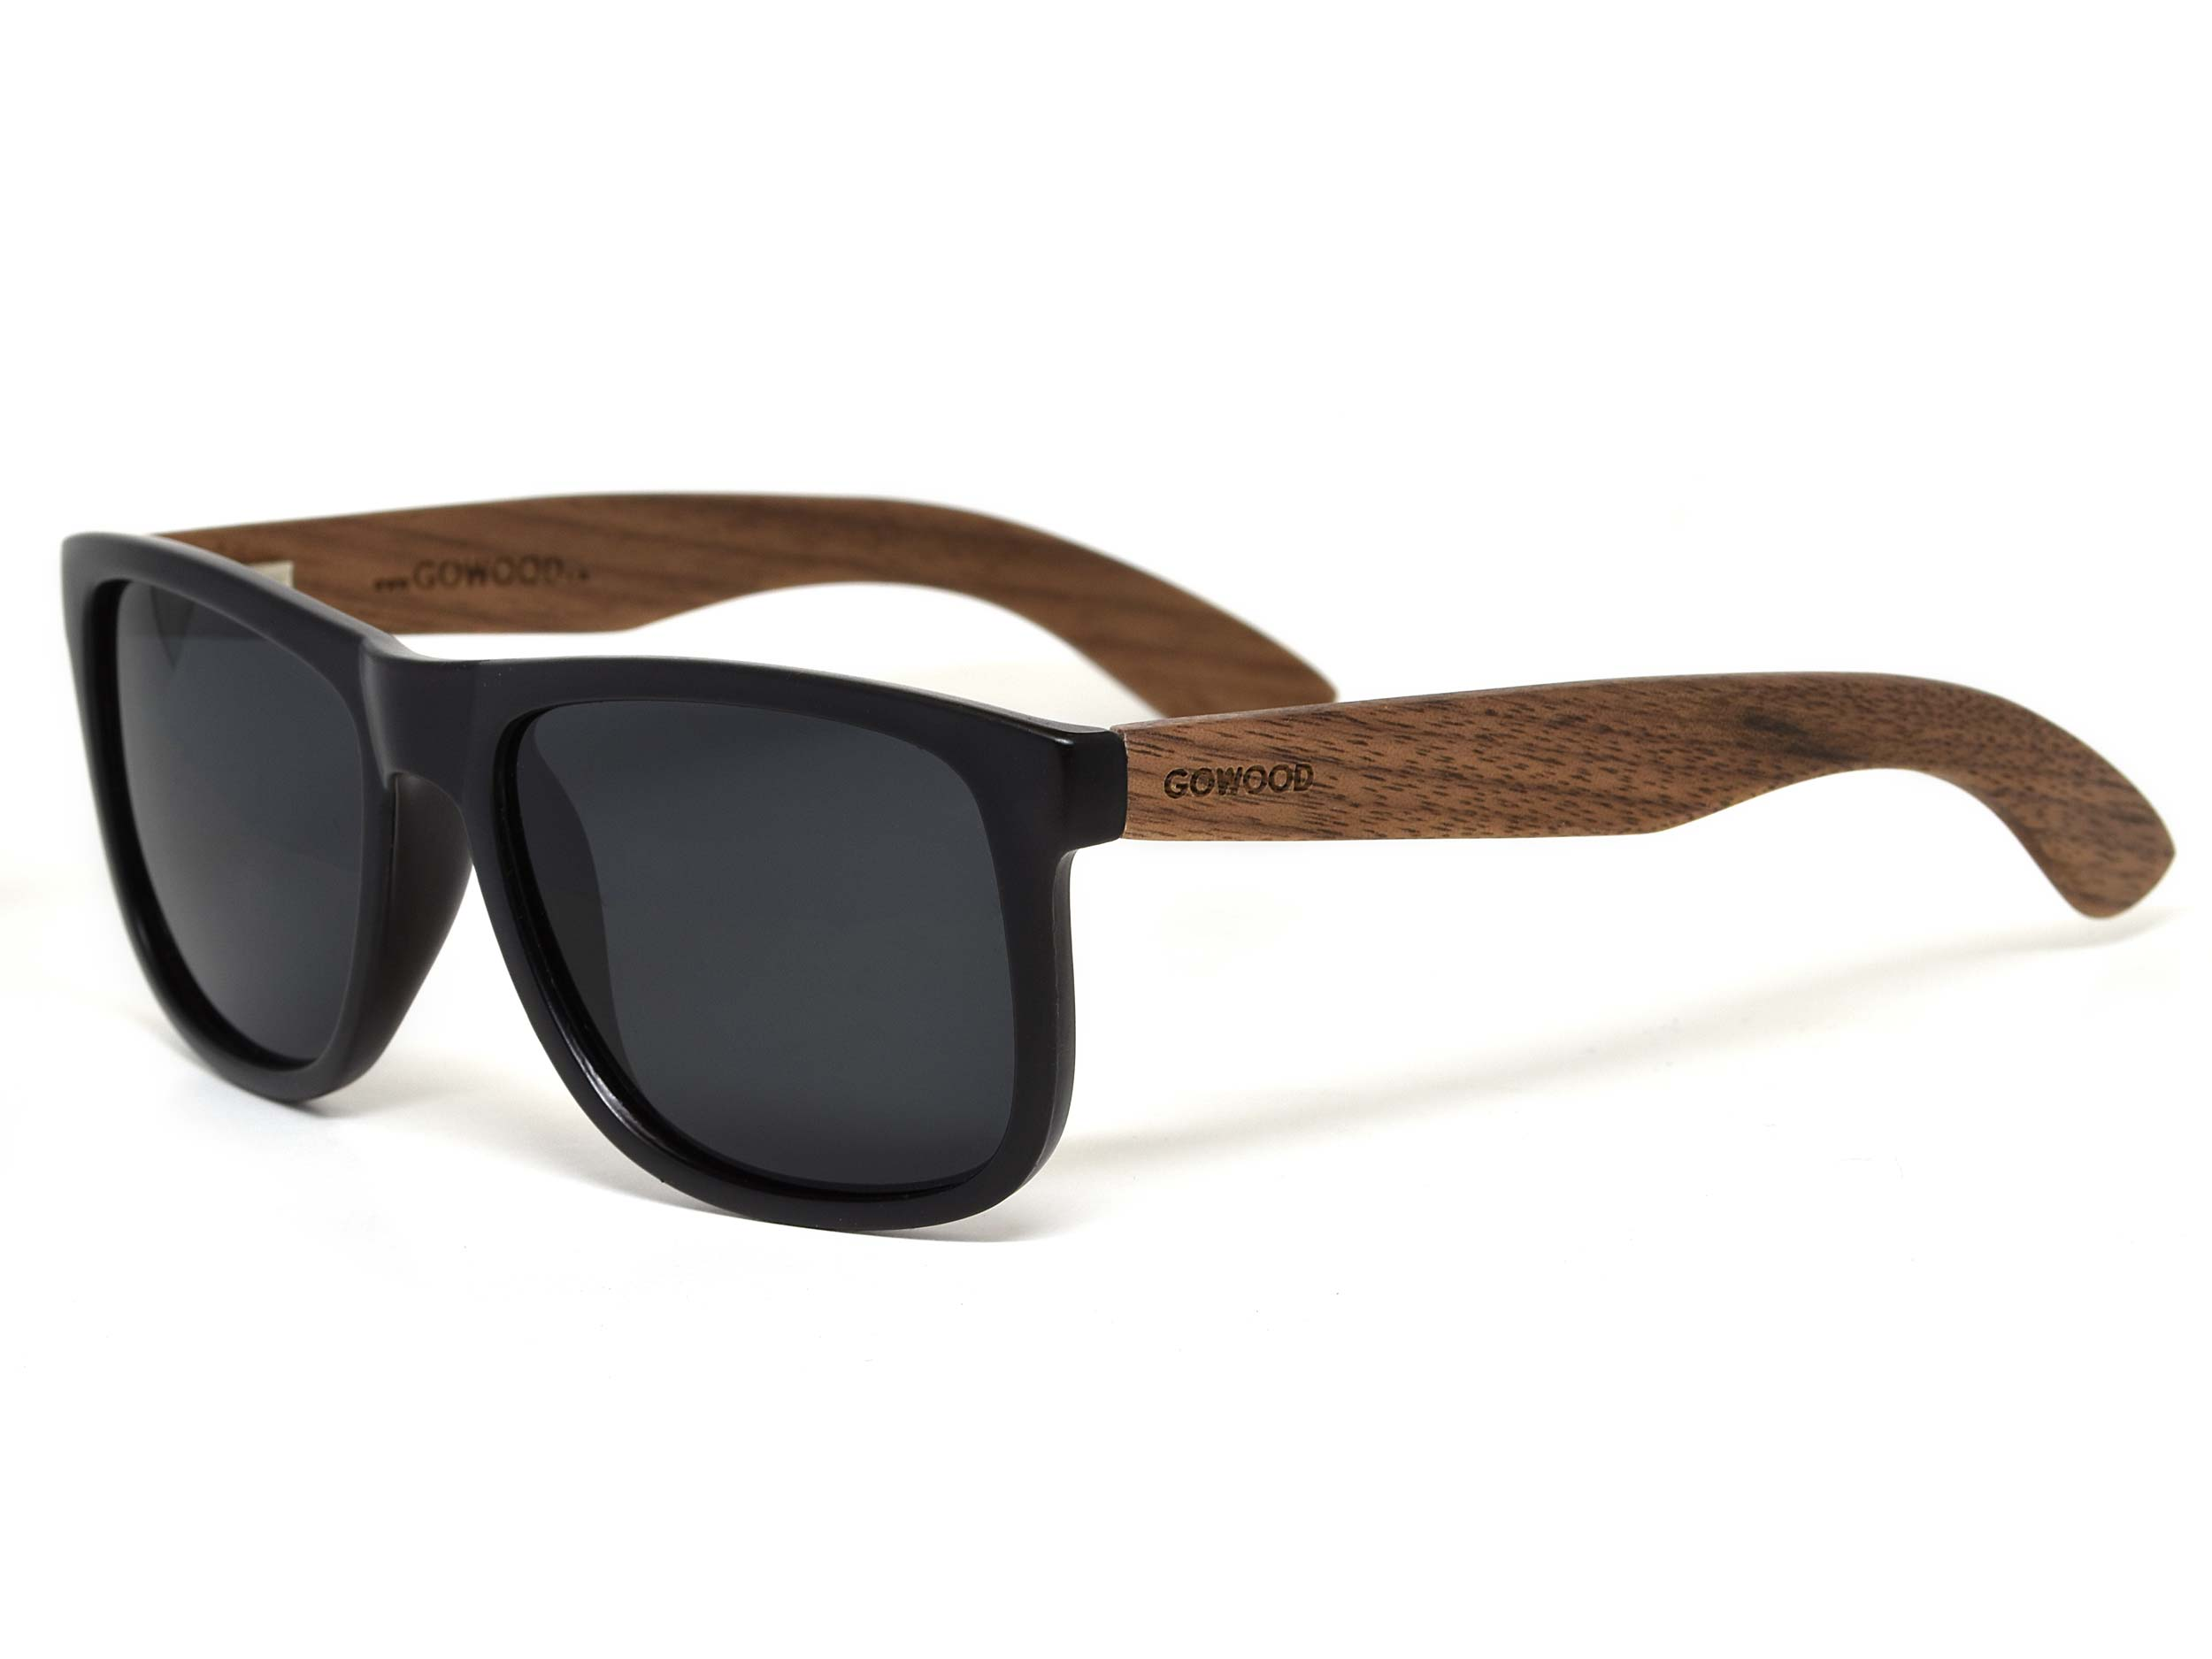 30d10aa2c1 Square walnut wood sunglasses